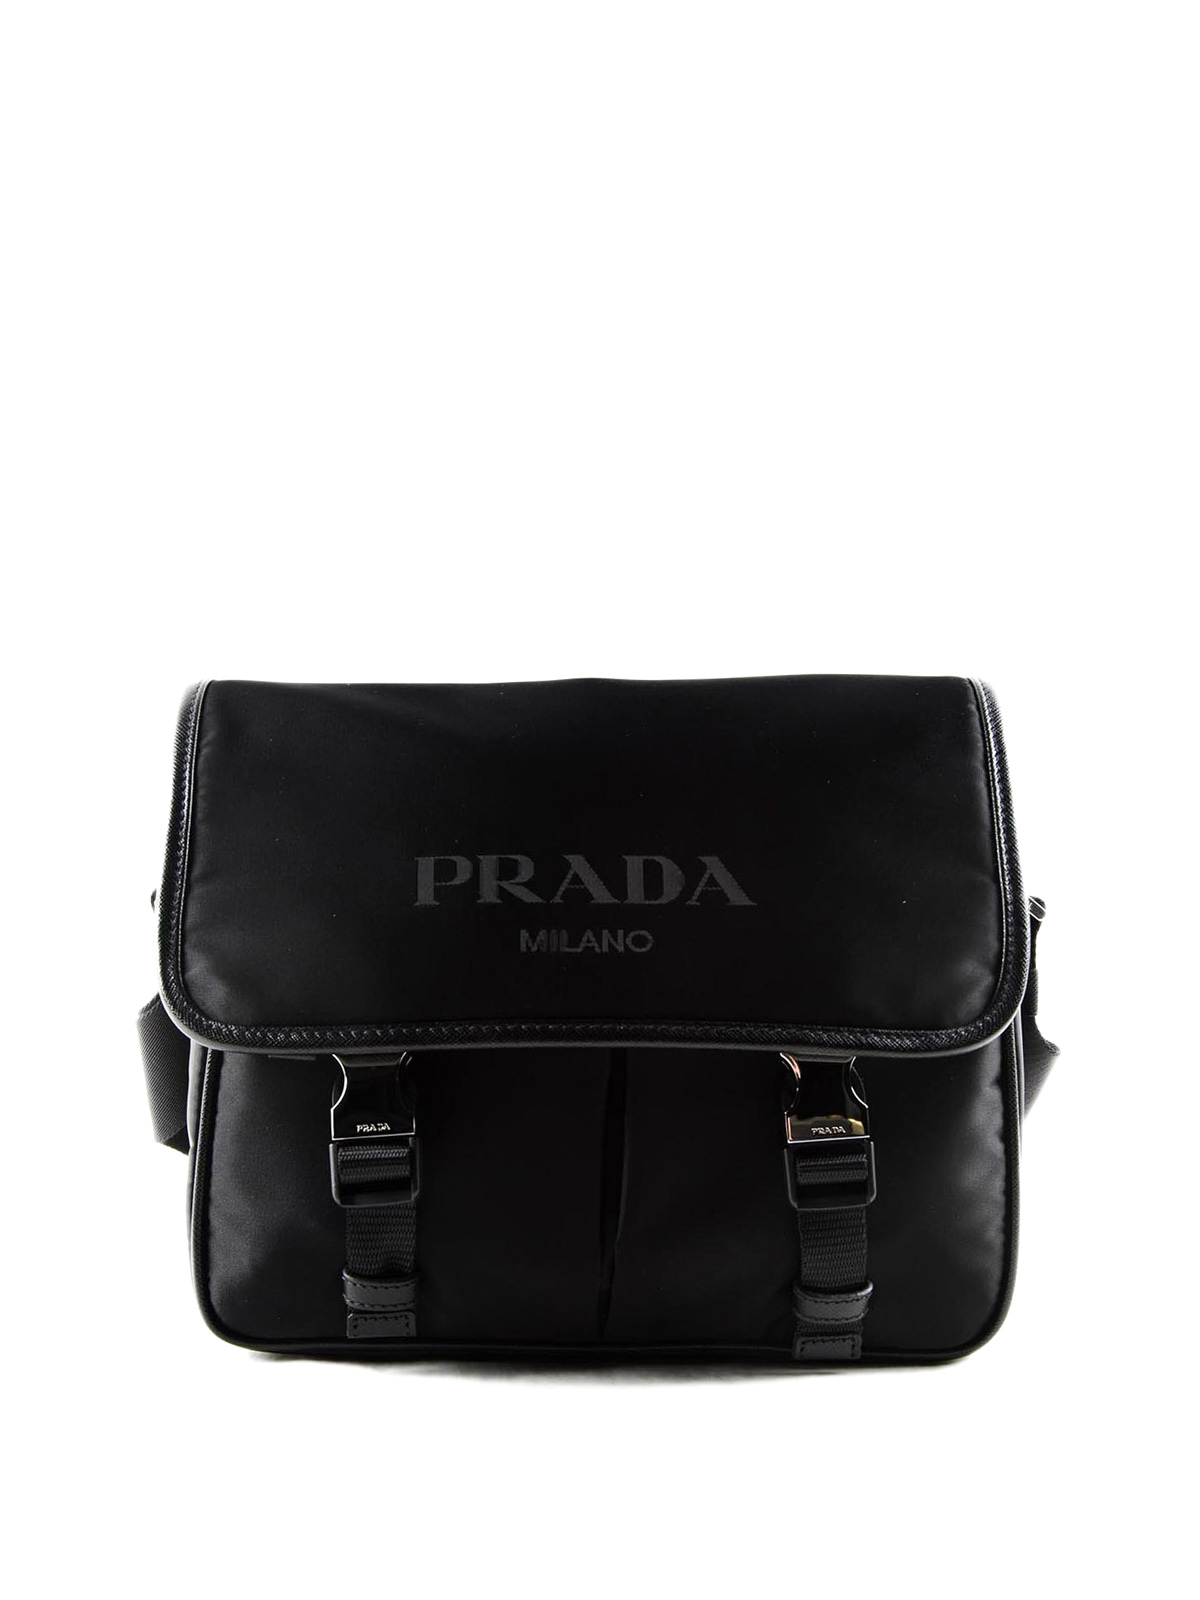 4f60d5cae8de ... clearance prada cross body bags nylon and saffiano bag 7a0f3 8dcd6